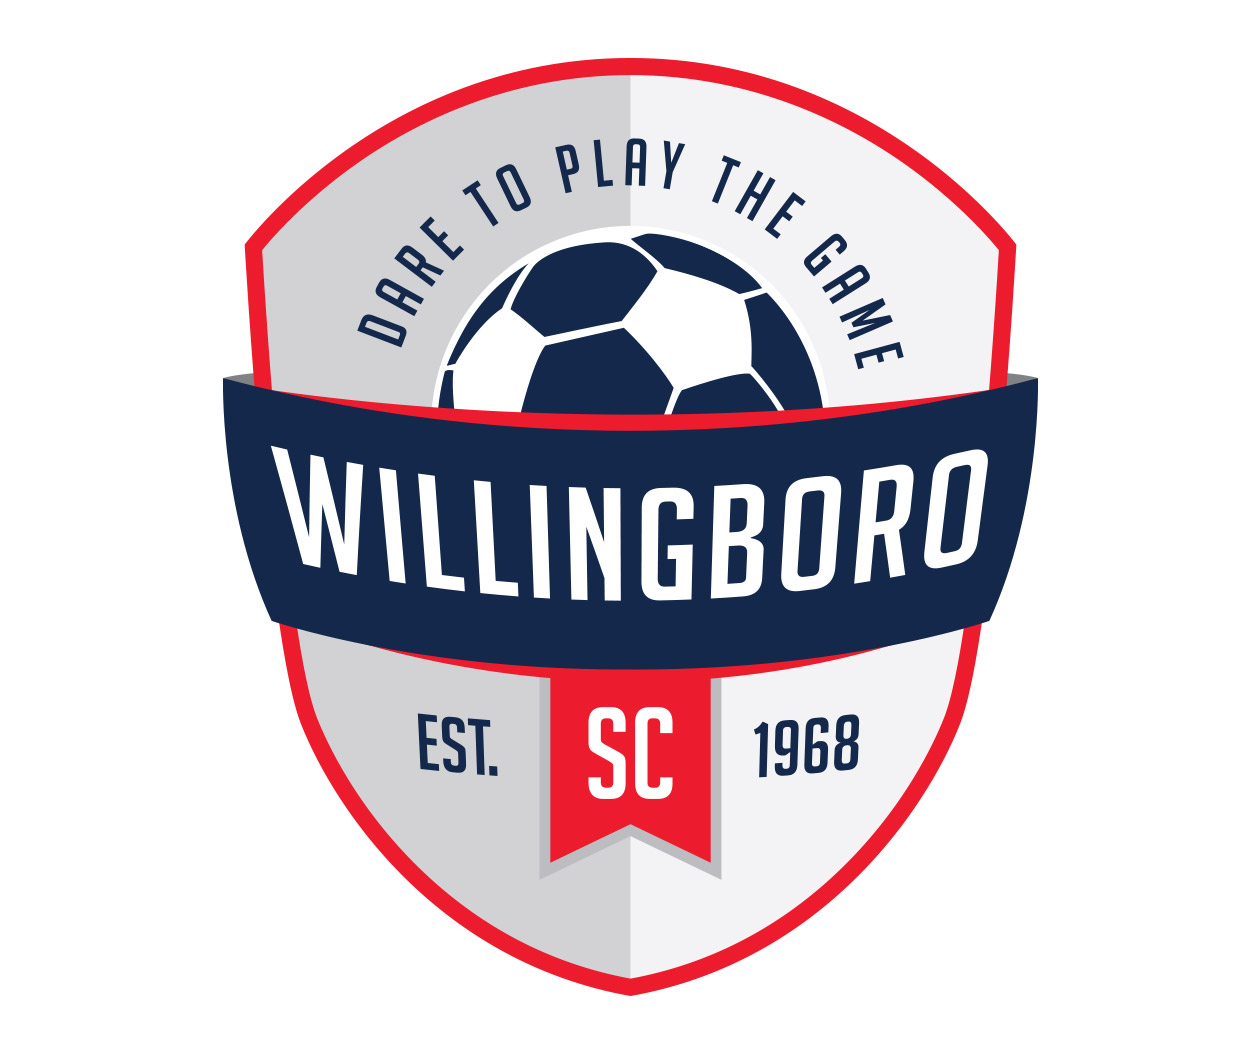 custom soccer logo design for willingboro soccer by jordan fretz design